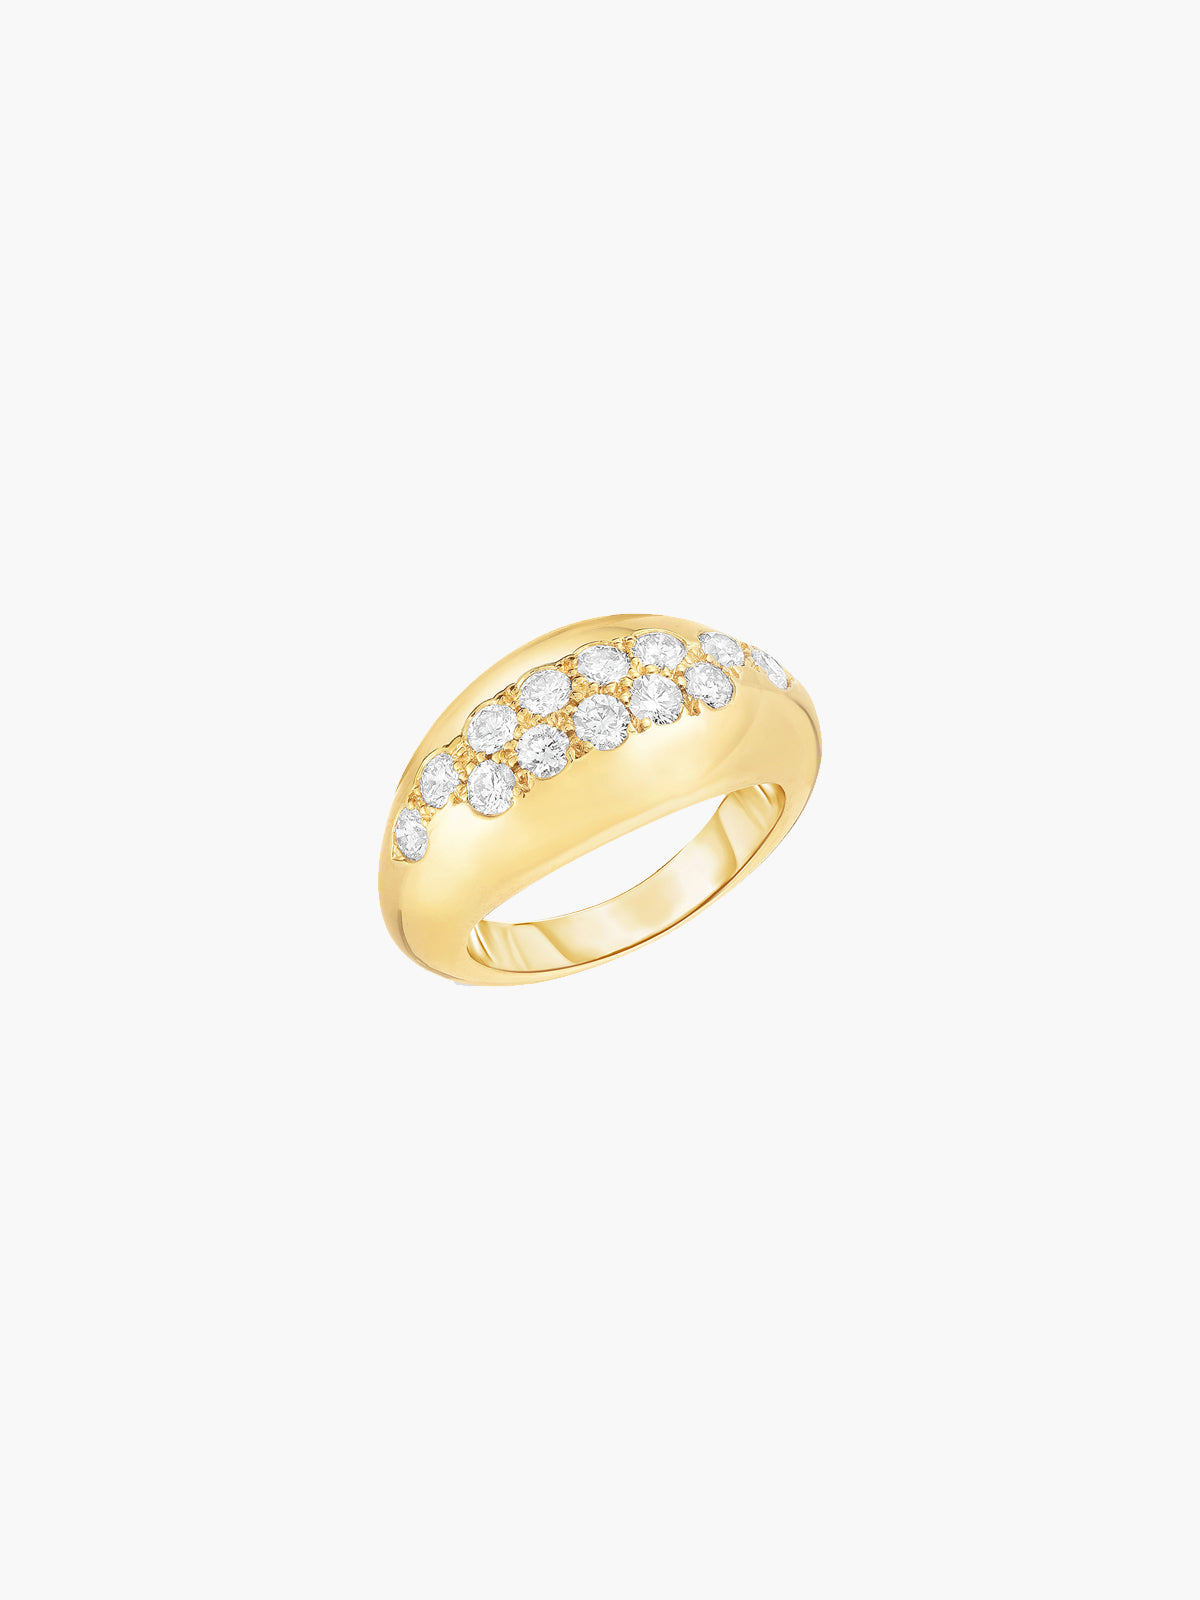 Sumerian Pinky Ring | White Diamond Sumerian Pinky Ring | White Diamond